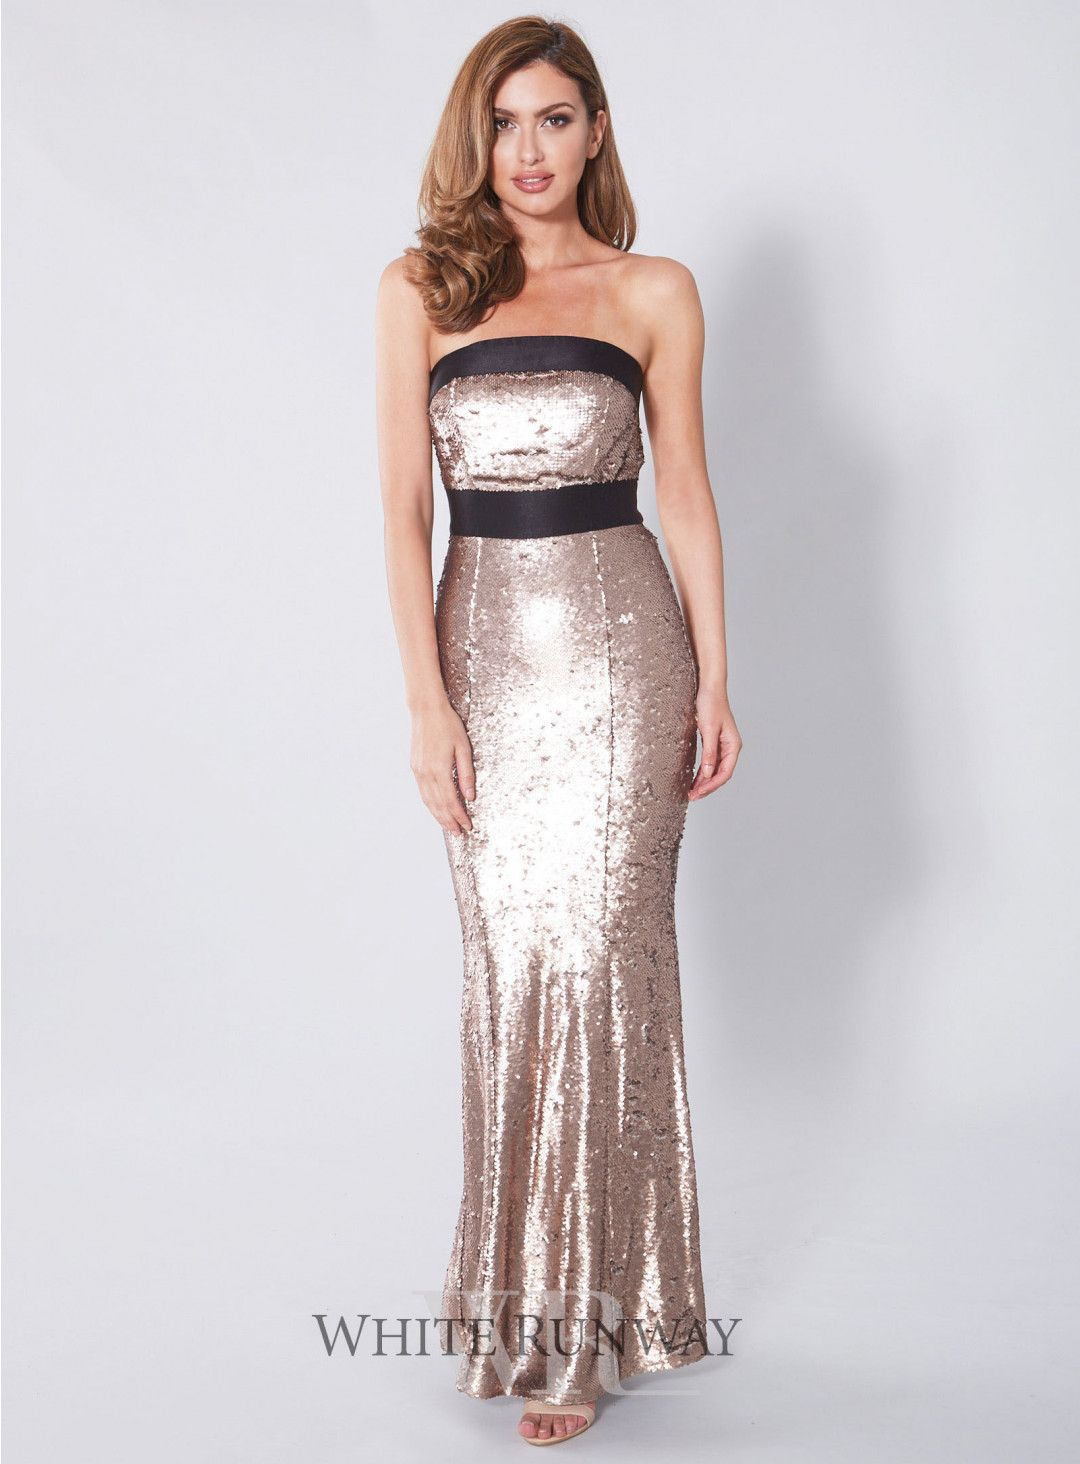 Hollywood bandage maxi a stunning maxi dress by romance the label